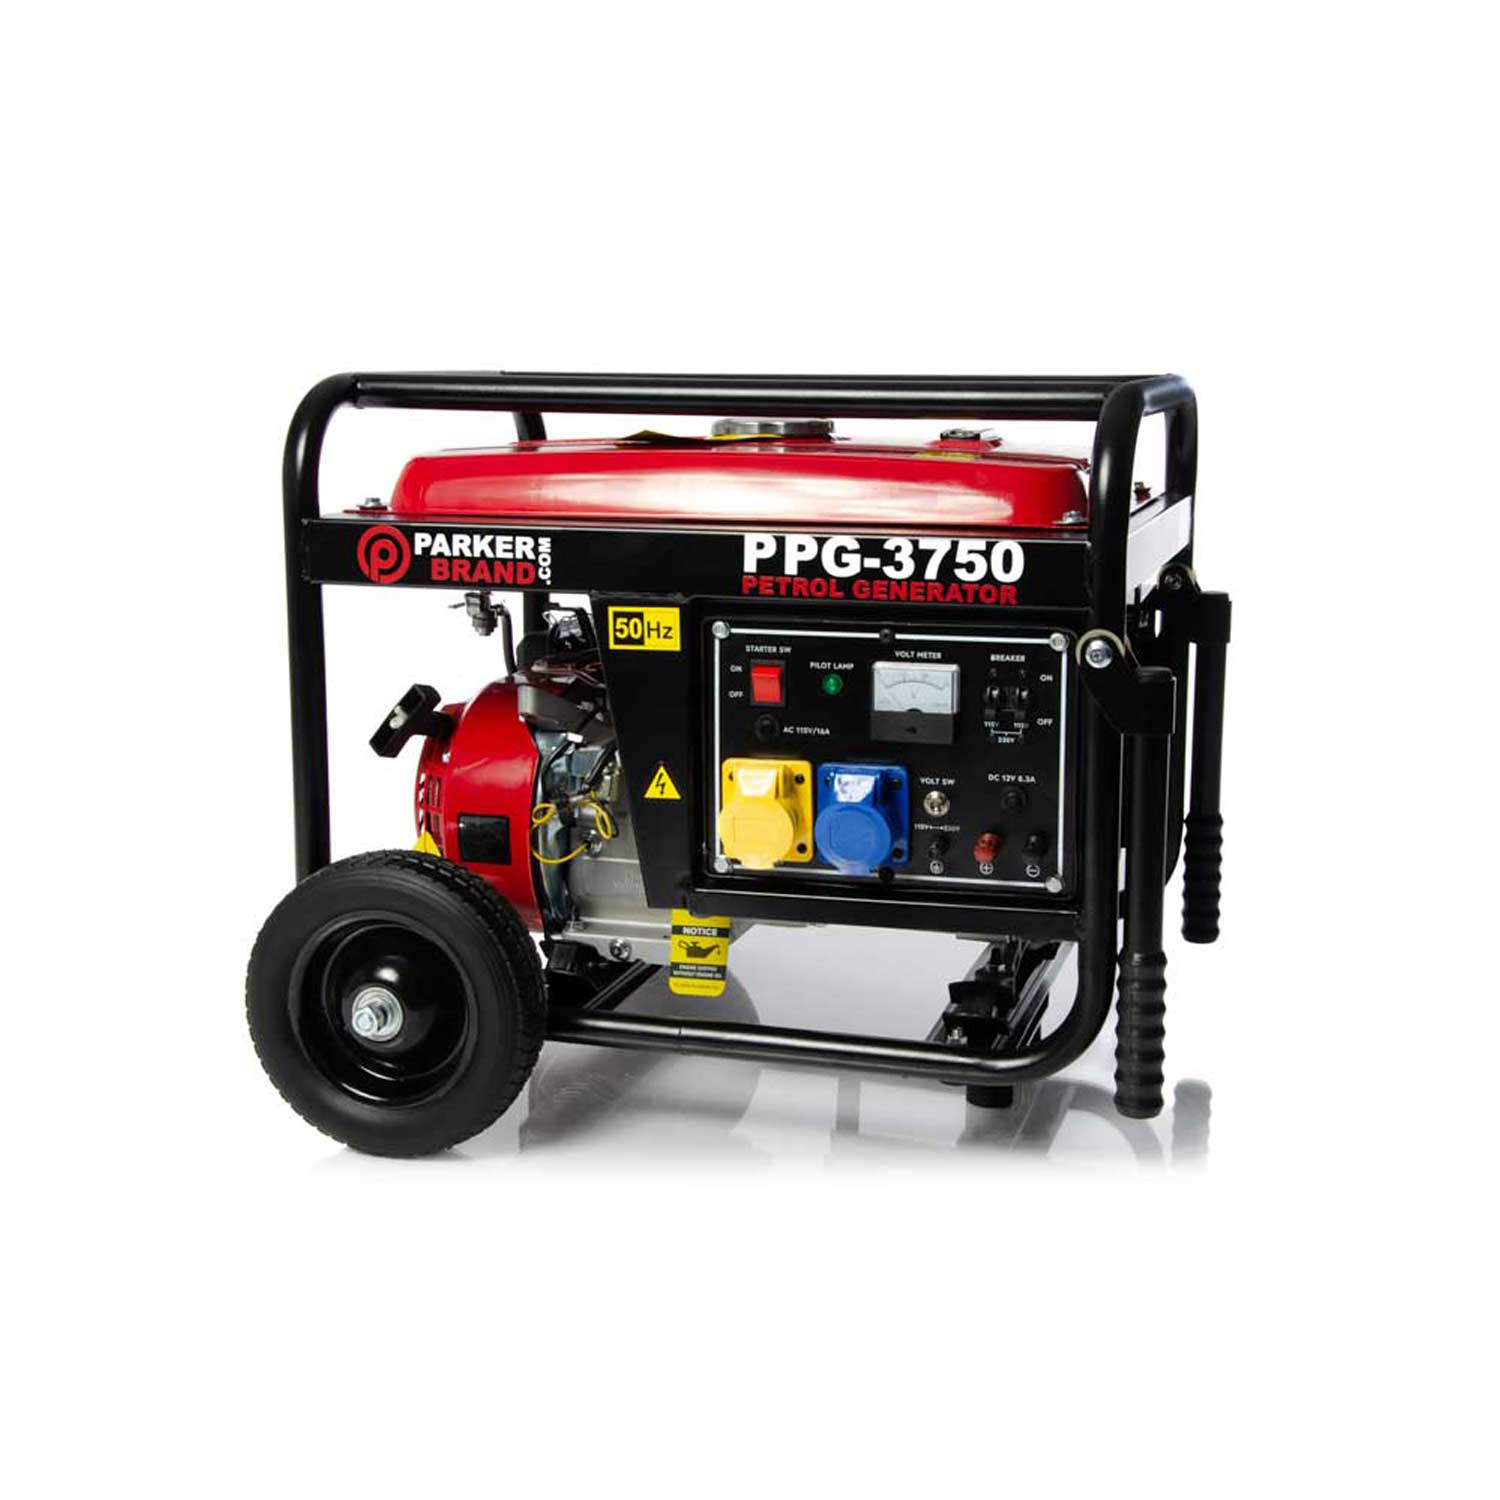 Our PPG-3750 is powerful and portable. You win.